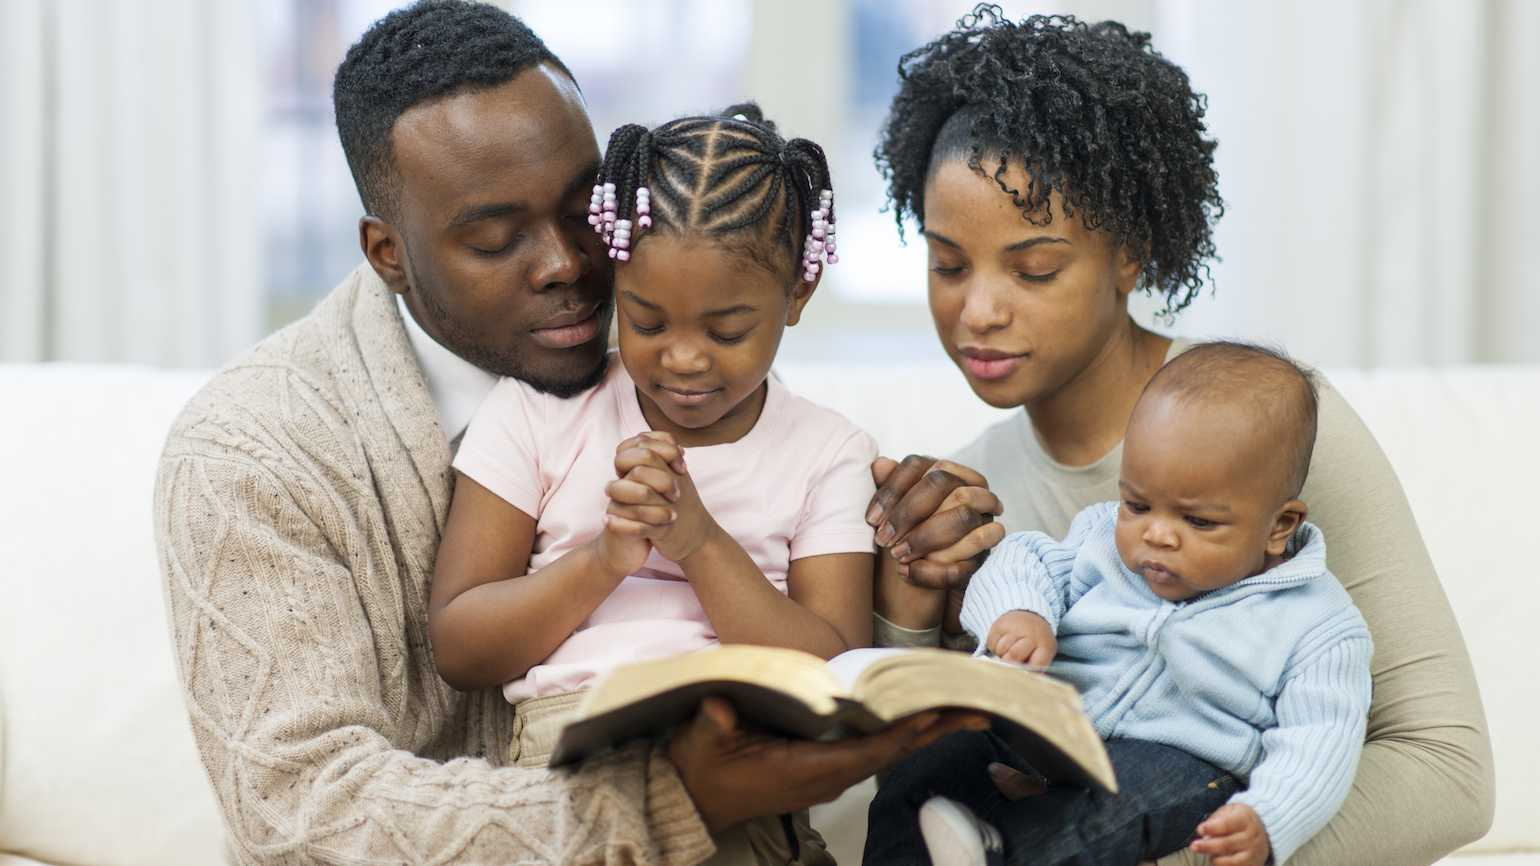 Teaching your kids about faith